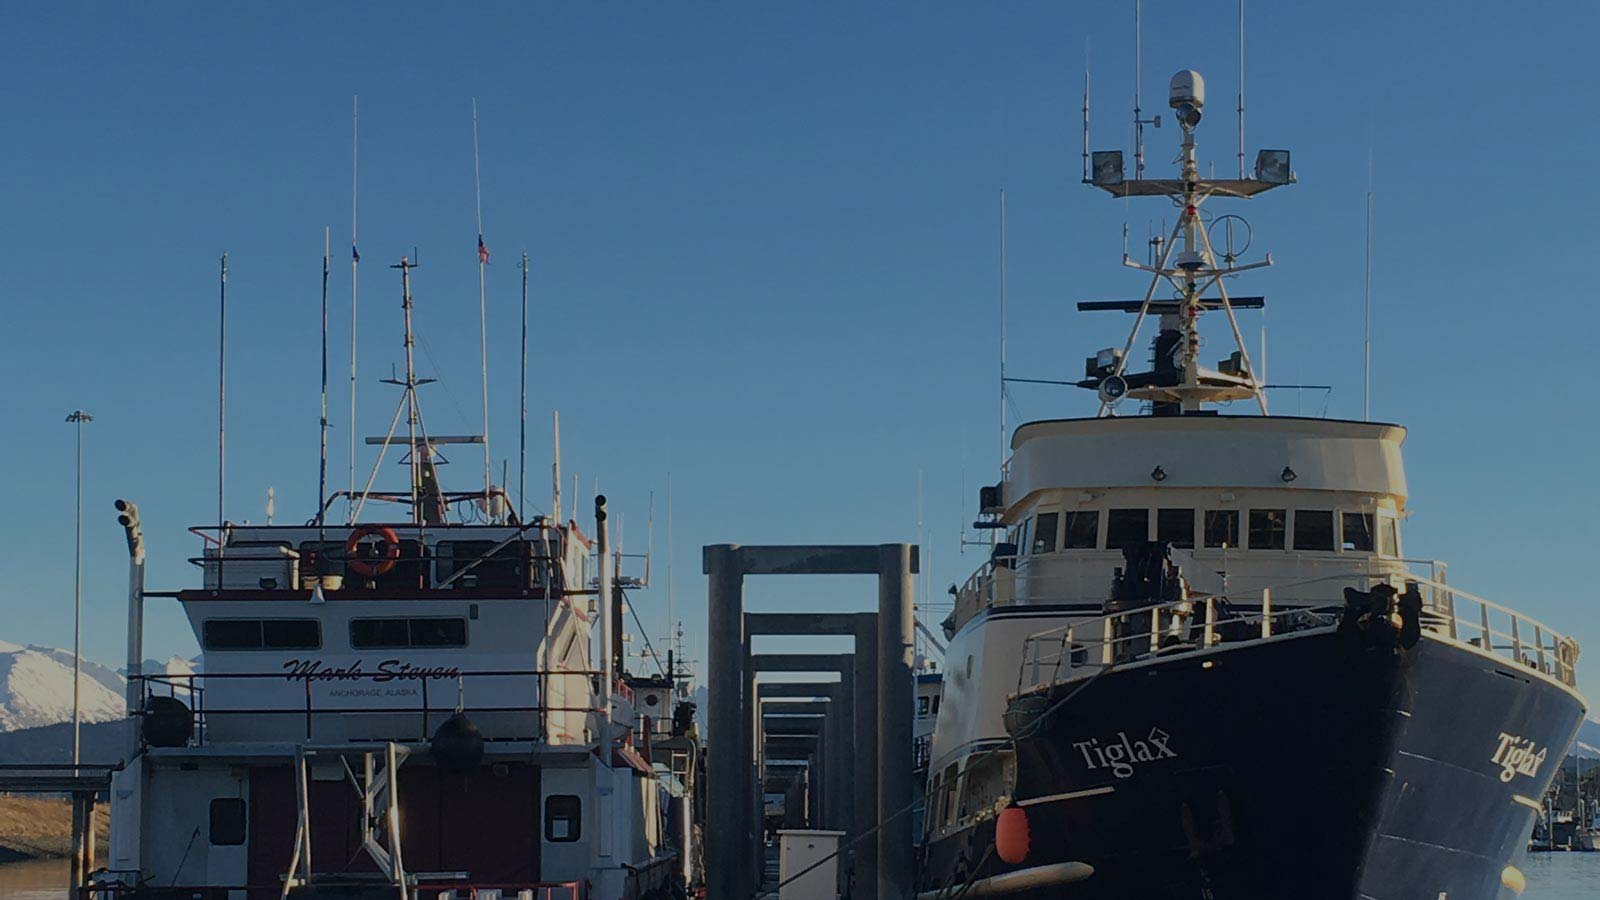 Two boats in Homer, Alaska are shown with the latest Garmin electronics from South Central Radar,